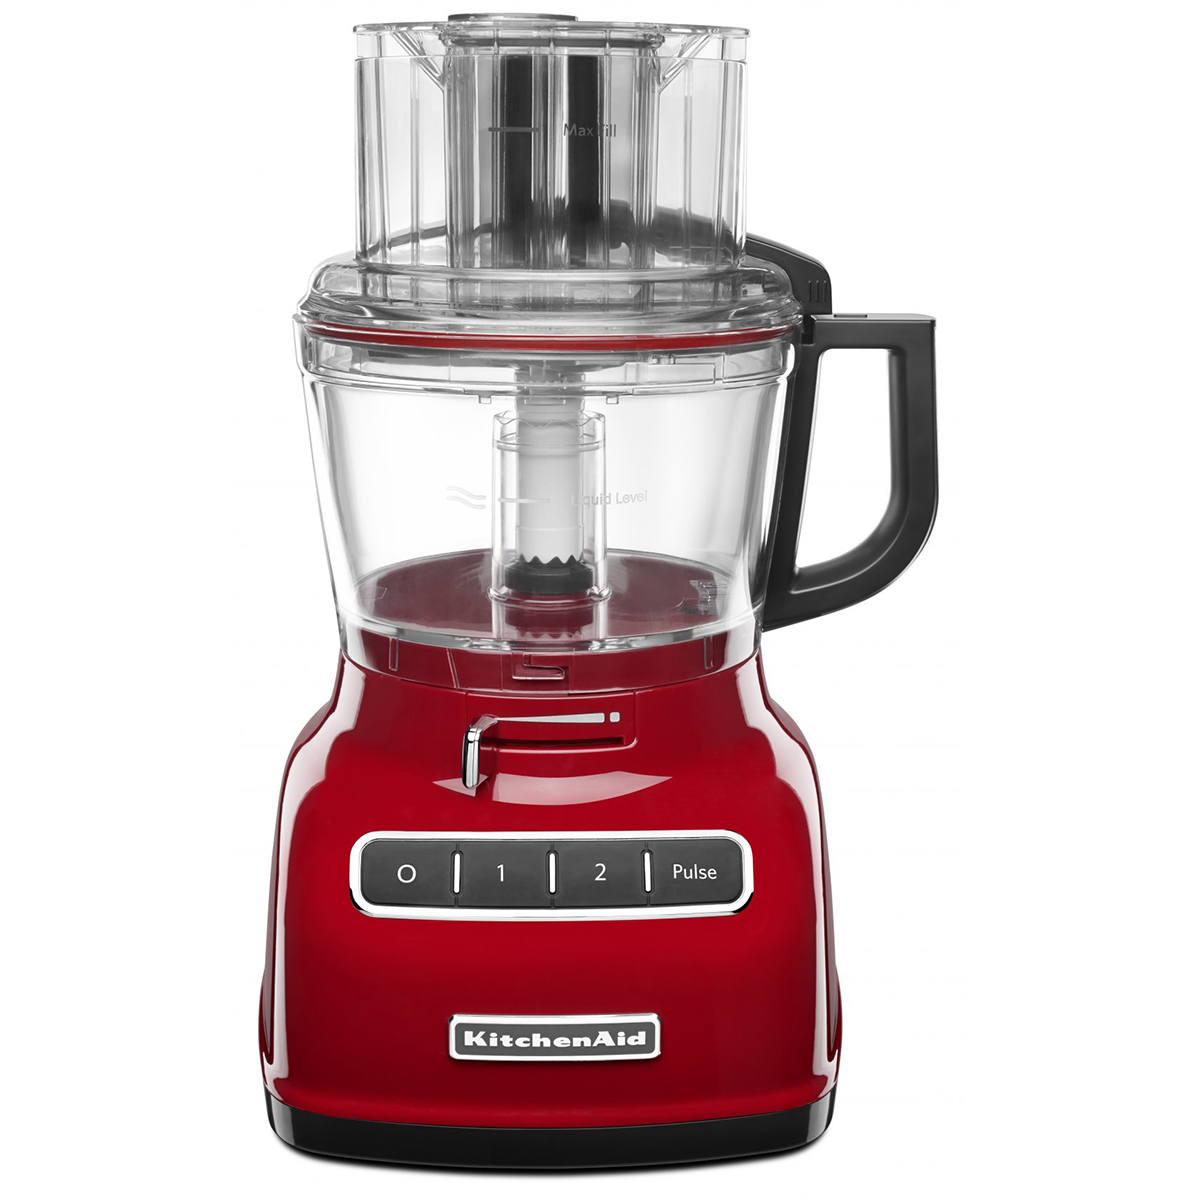 KitchenAid KFP0933 Reviews - ProductReview.com.au on haier products, ikea products, kitchen care products, kohler products, braun products, kitchen invention products, hampton bay products, ge products, sleep aid products, general electric products,